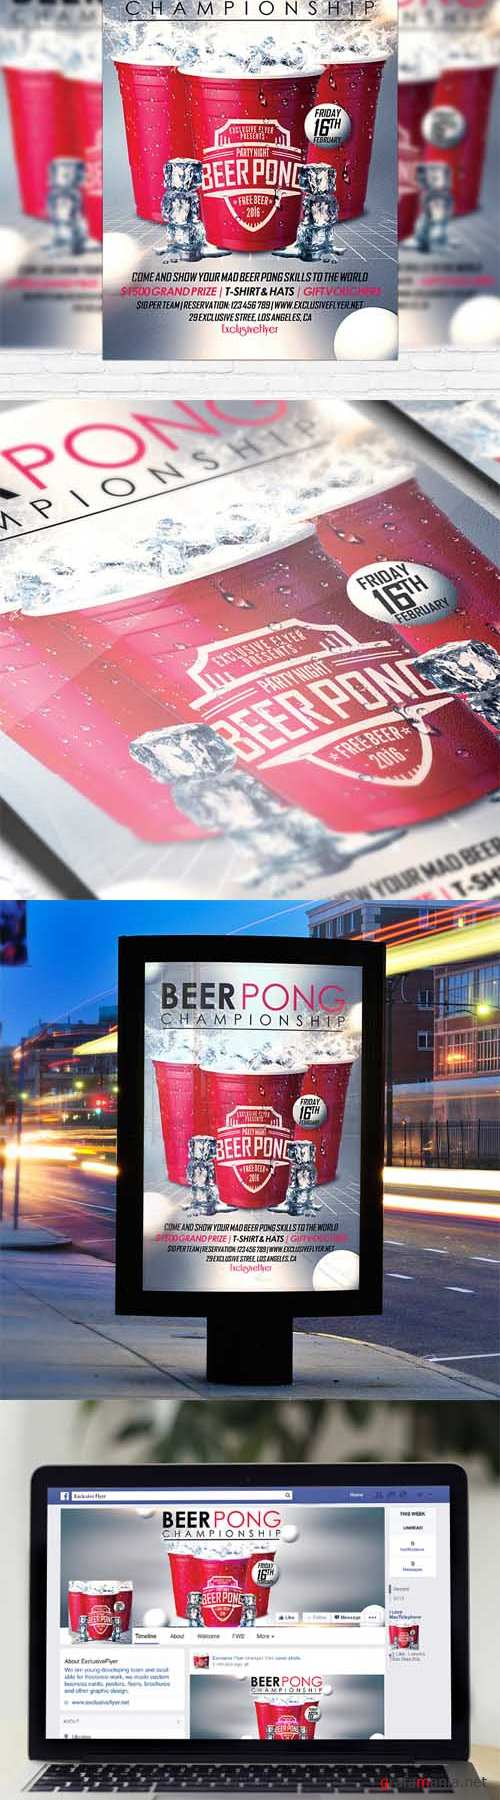 Flyer Template - Beer Pong Championship + Facebook Cover